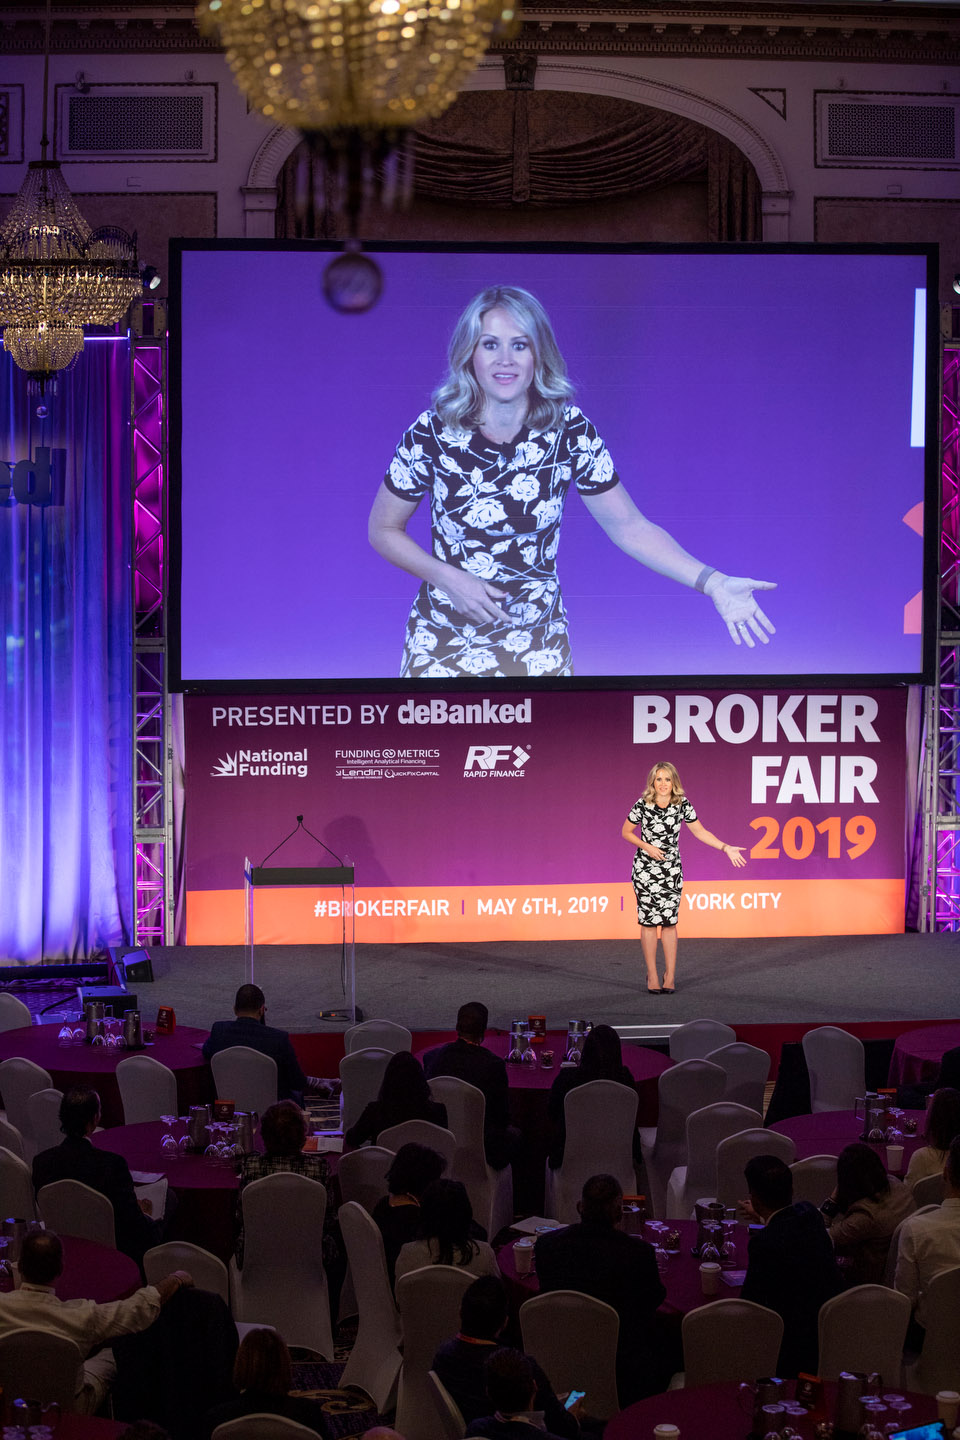 Broker Fair 2019 - Presented by deBanked - 374